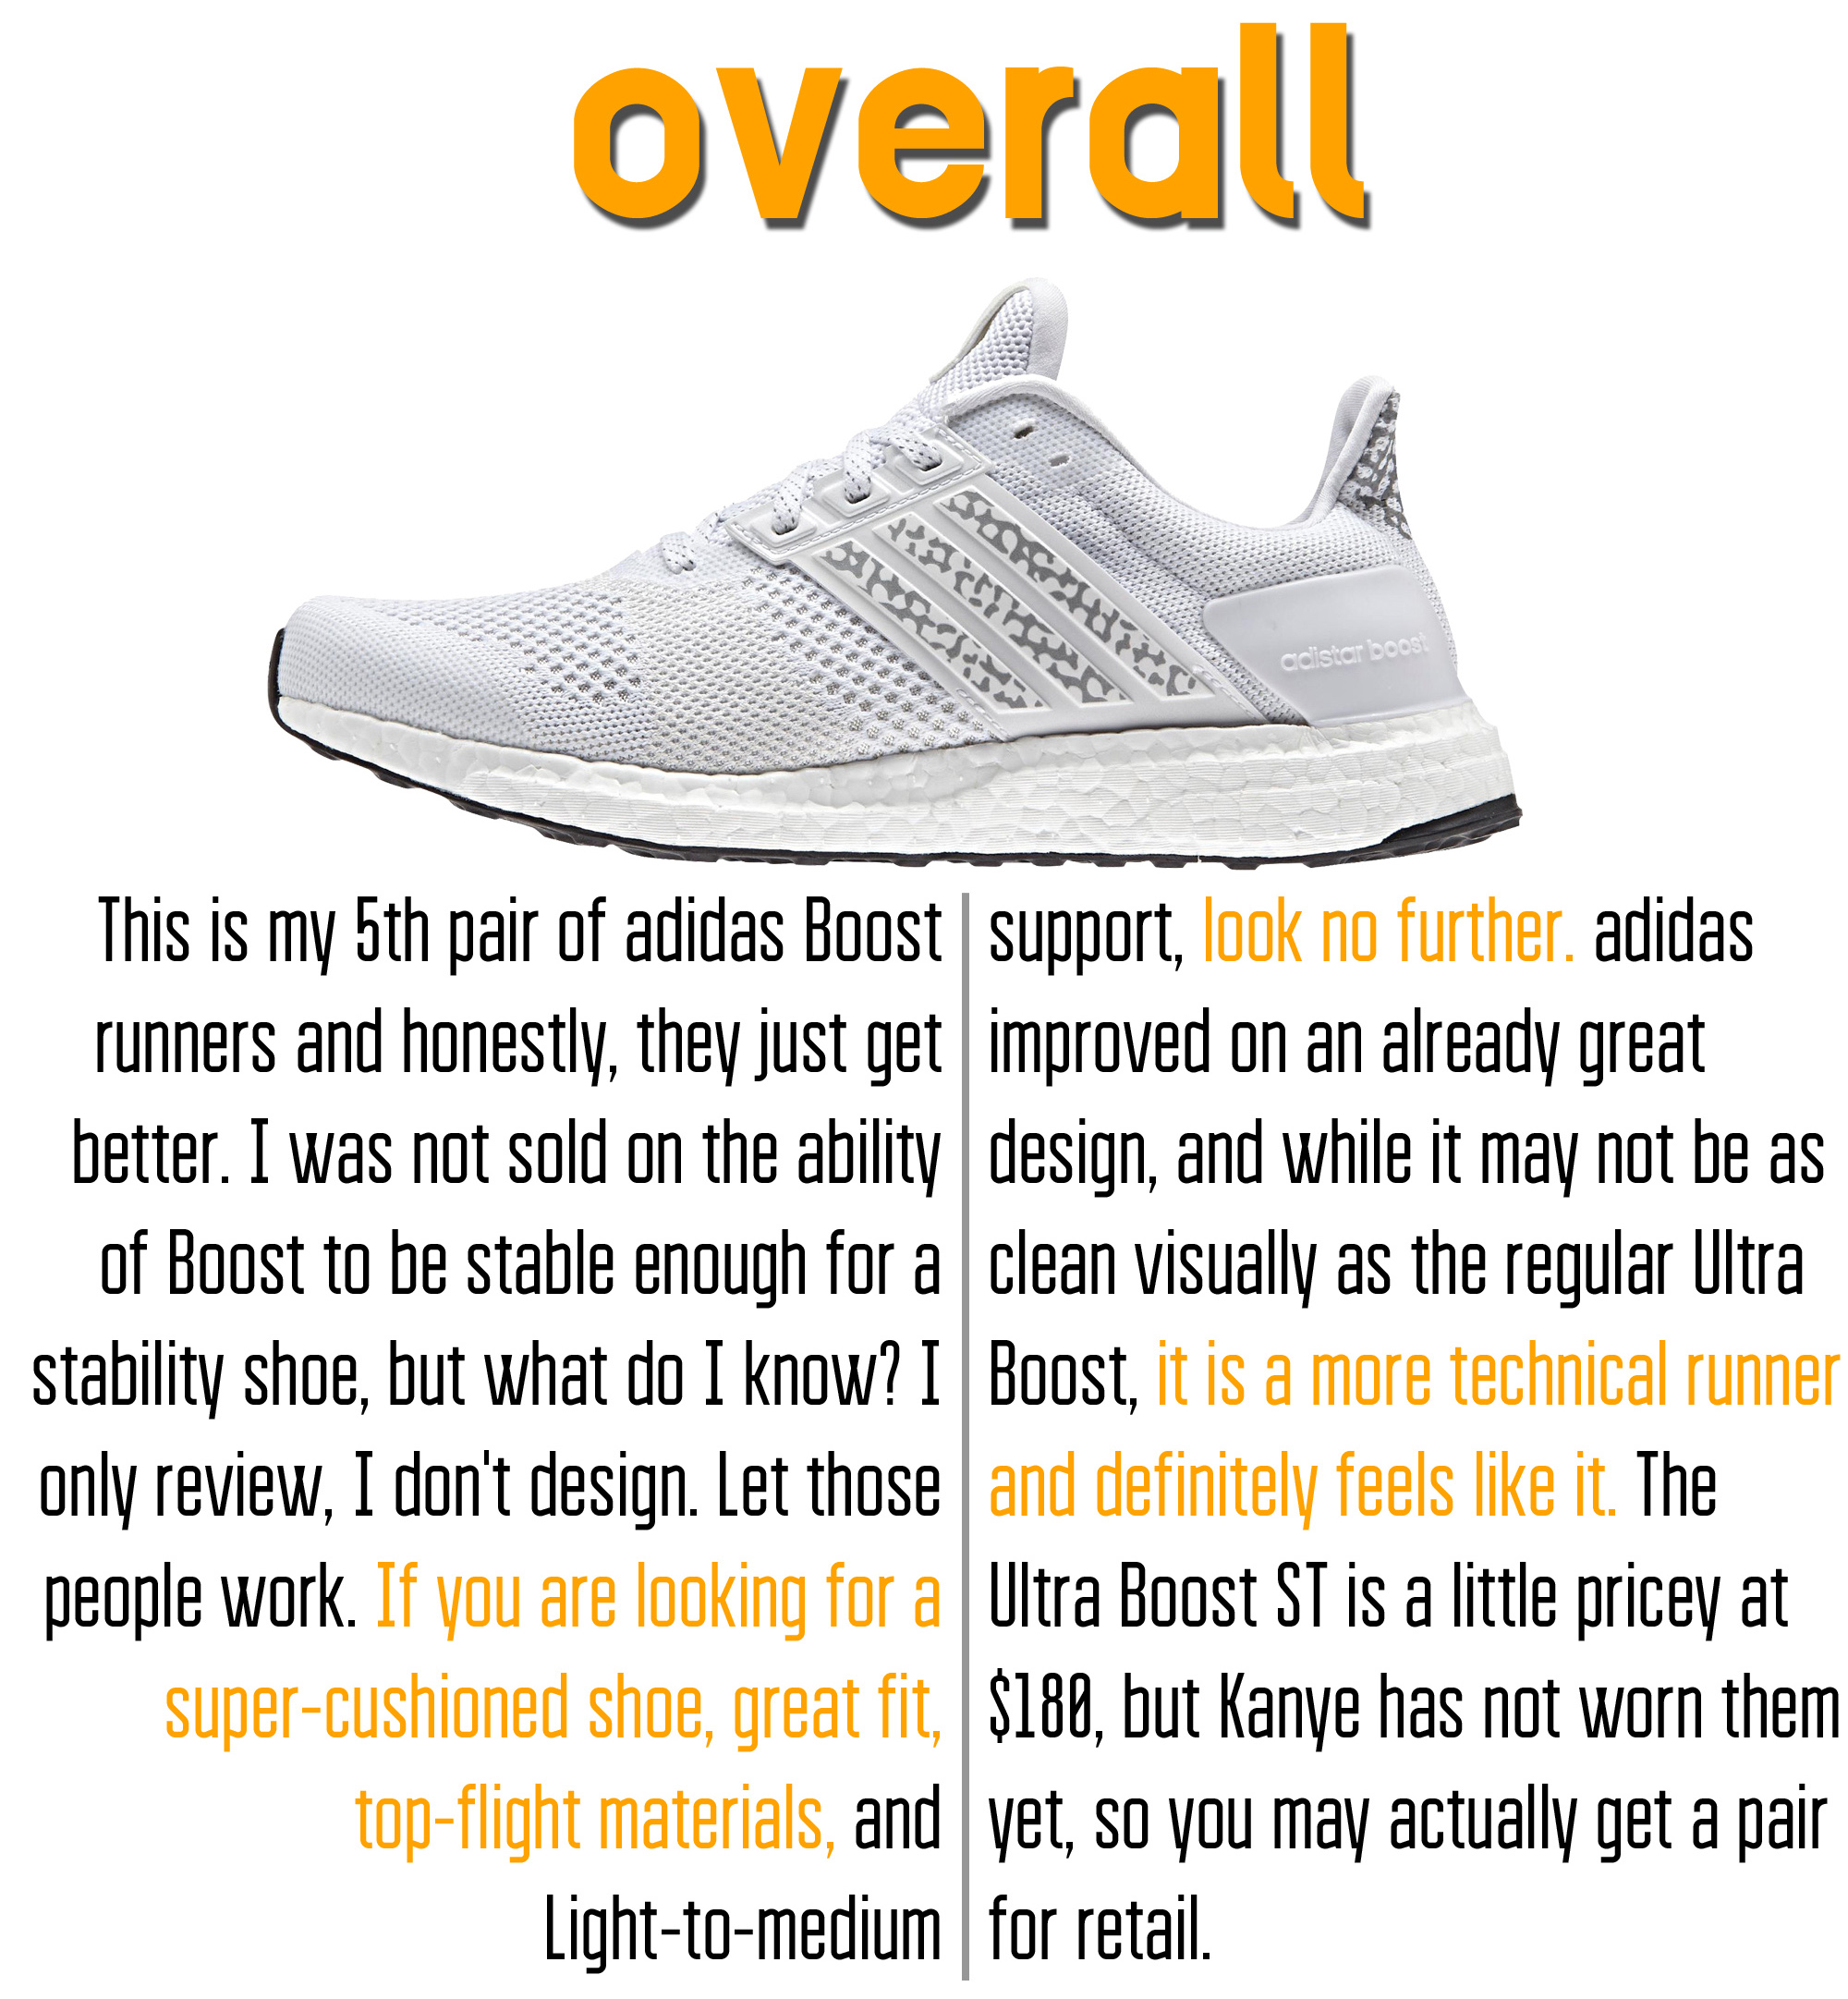 dd3f90b3914 adidas Ultra Boost ST Performance Review - WearTesters